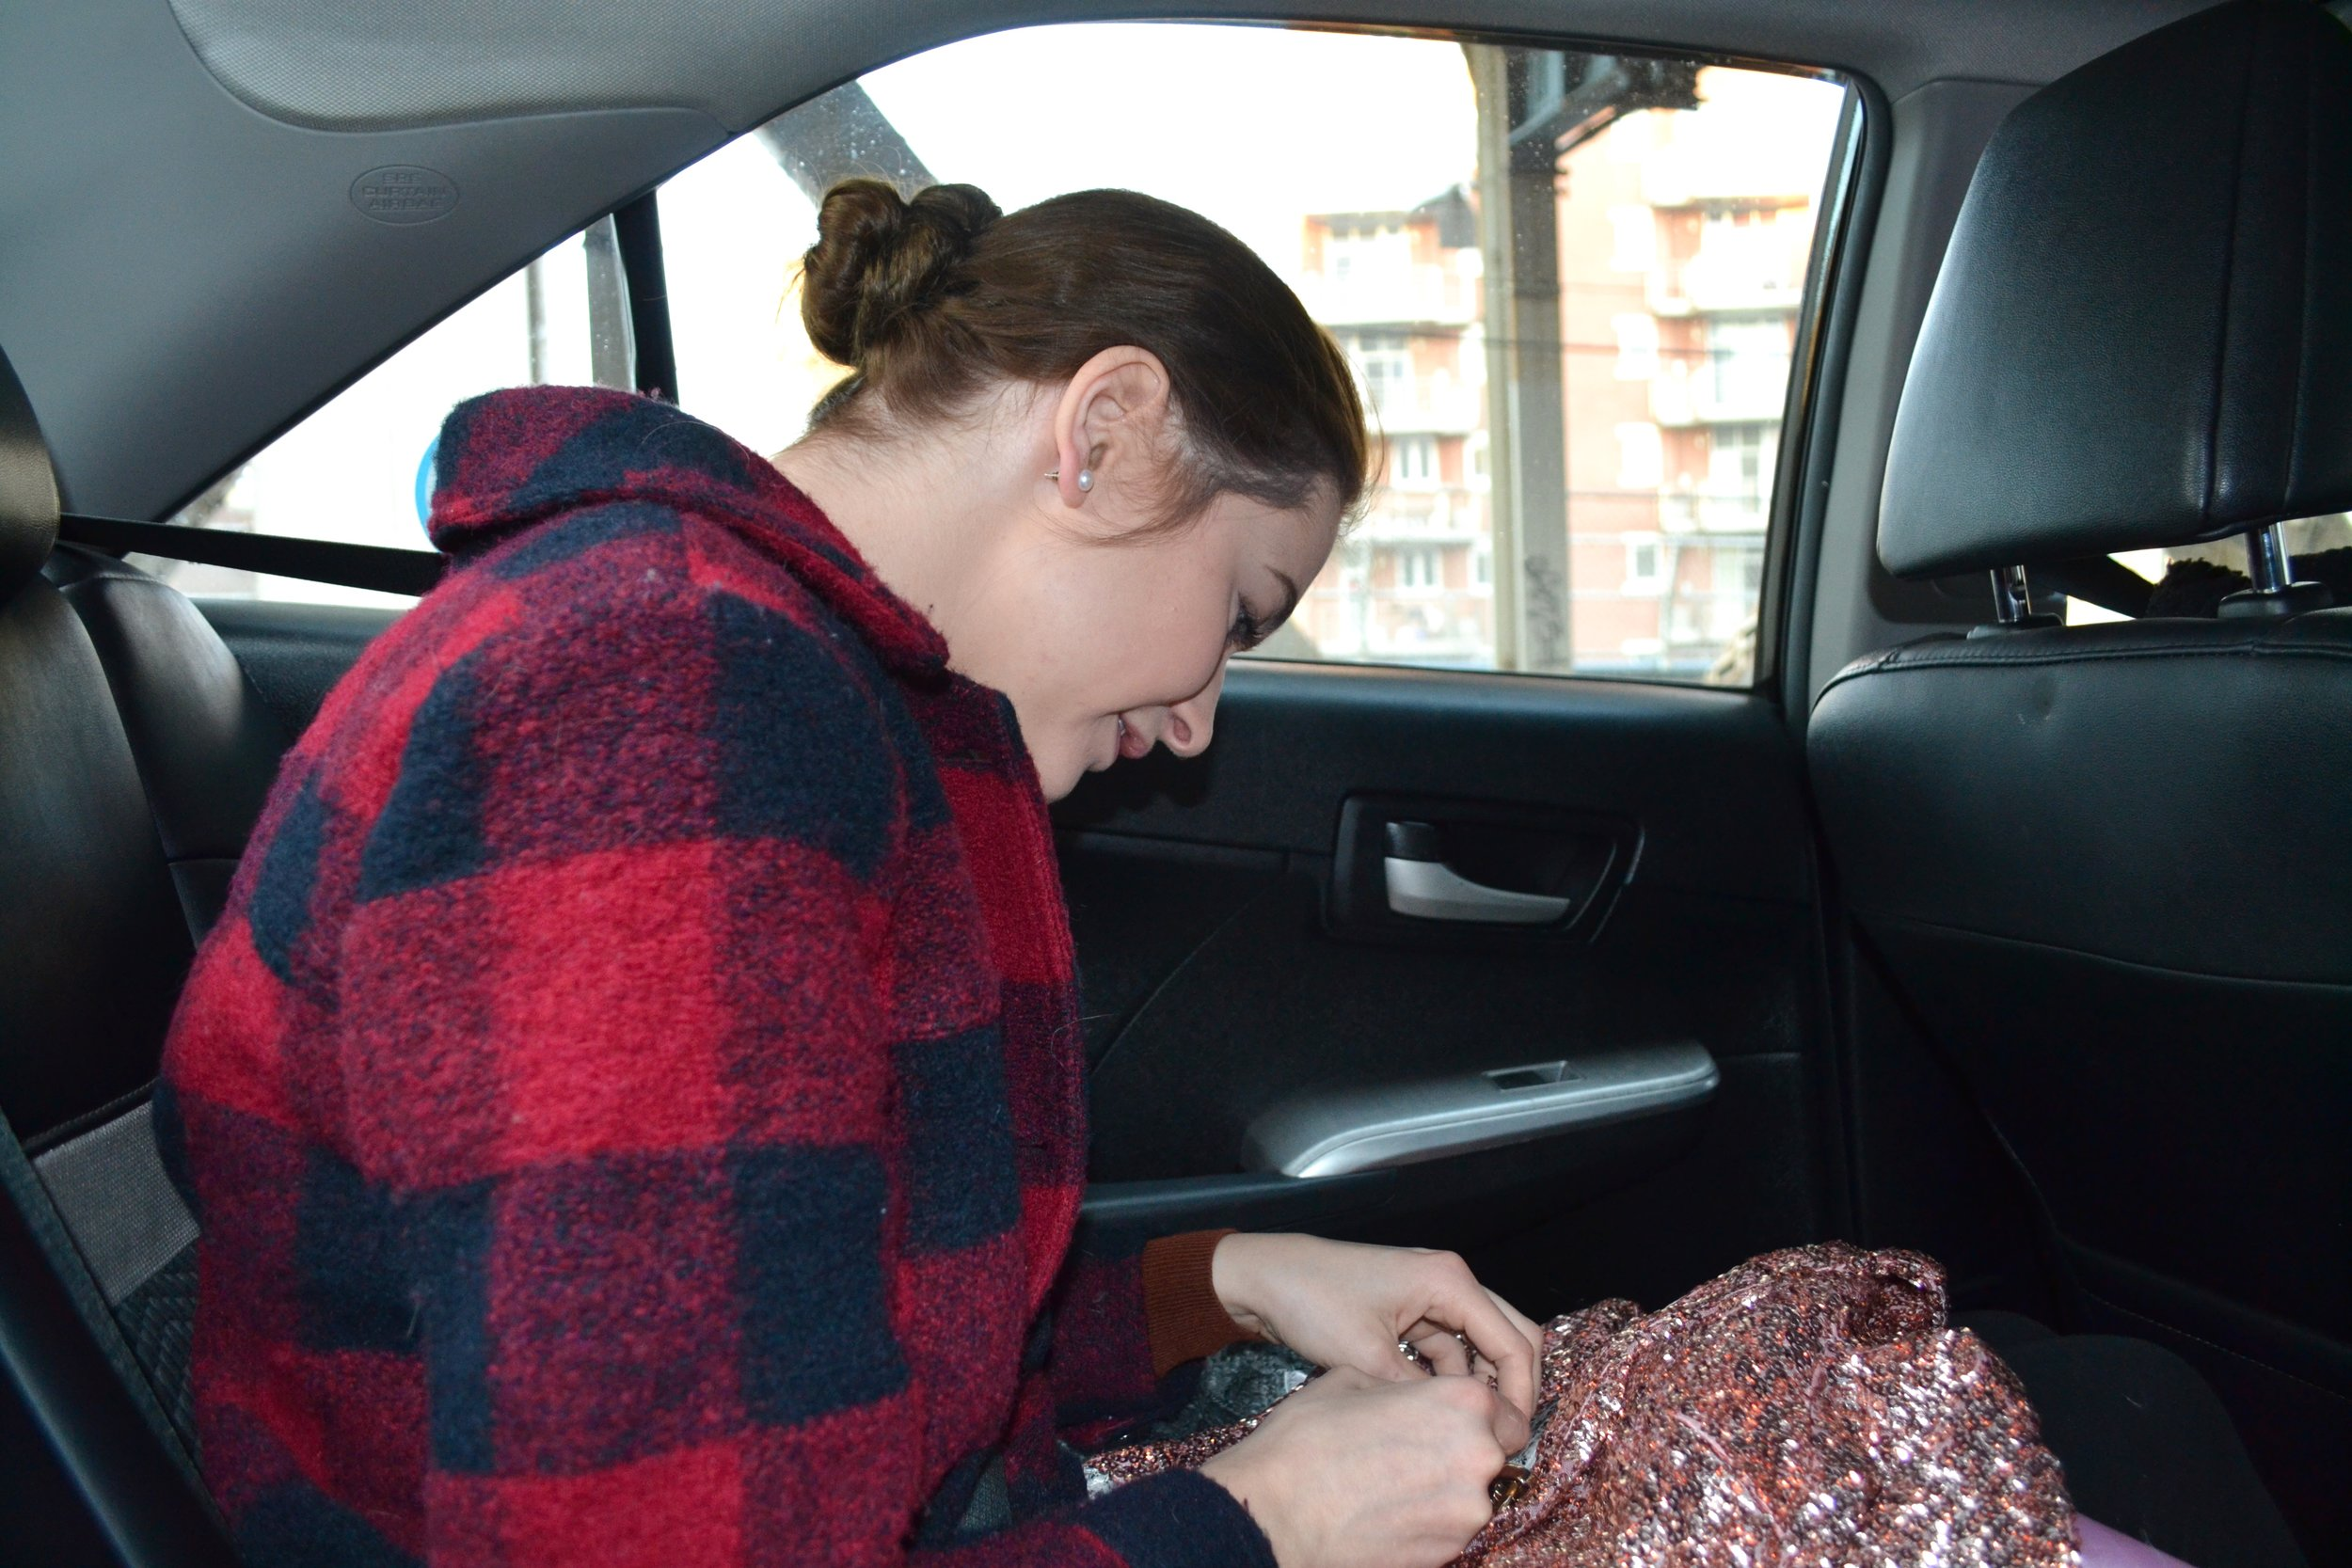 Miranda adding last minute touches to her suit on the way to the show.